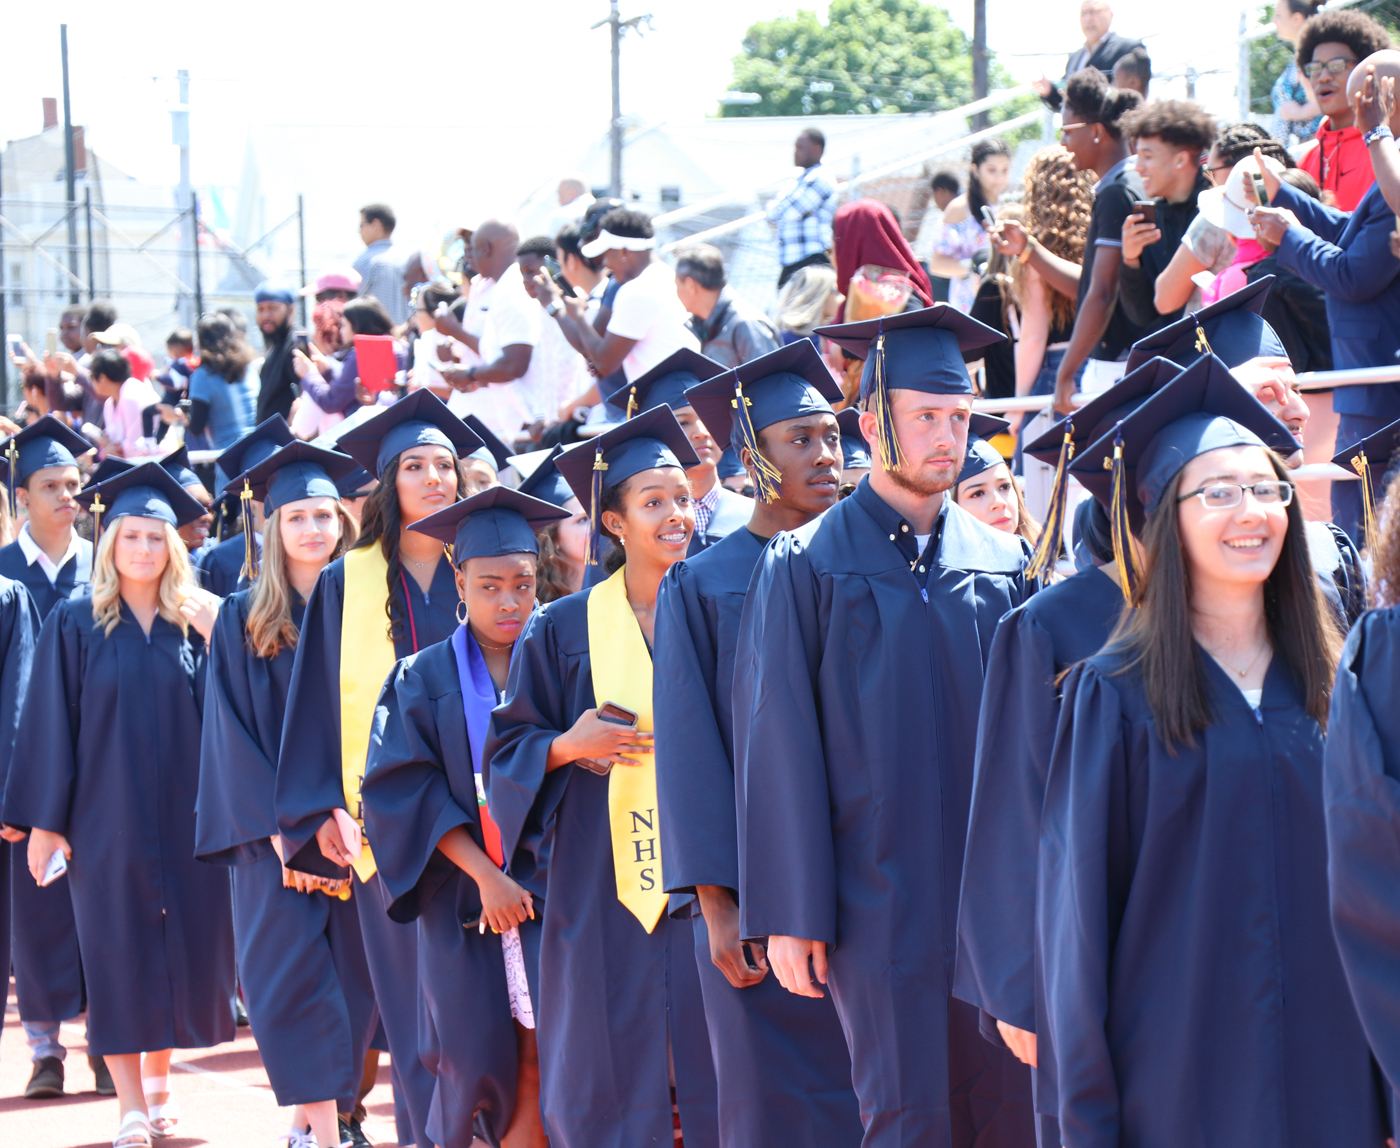 The Class of 2018 enters the stadium for graduation.